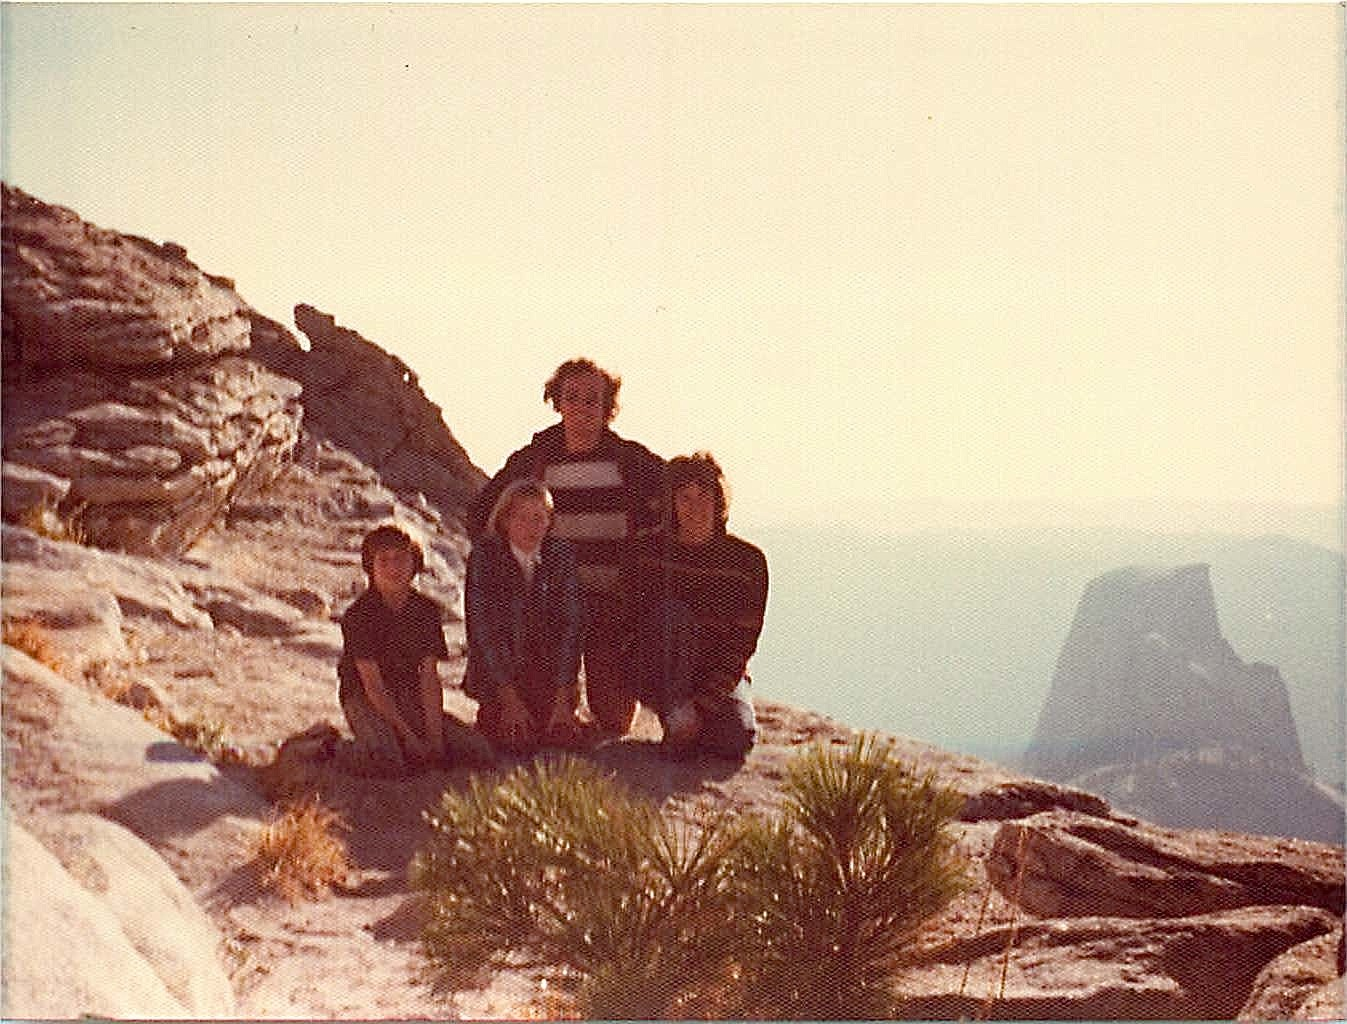 Gordon, Alison Kelly, Lorraine in front, Peter Strong behind, Clouds Rest, Yosemite